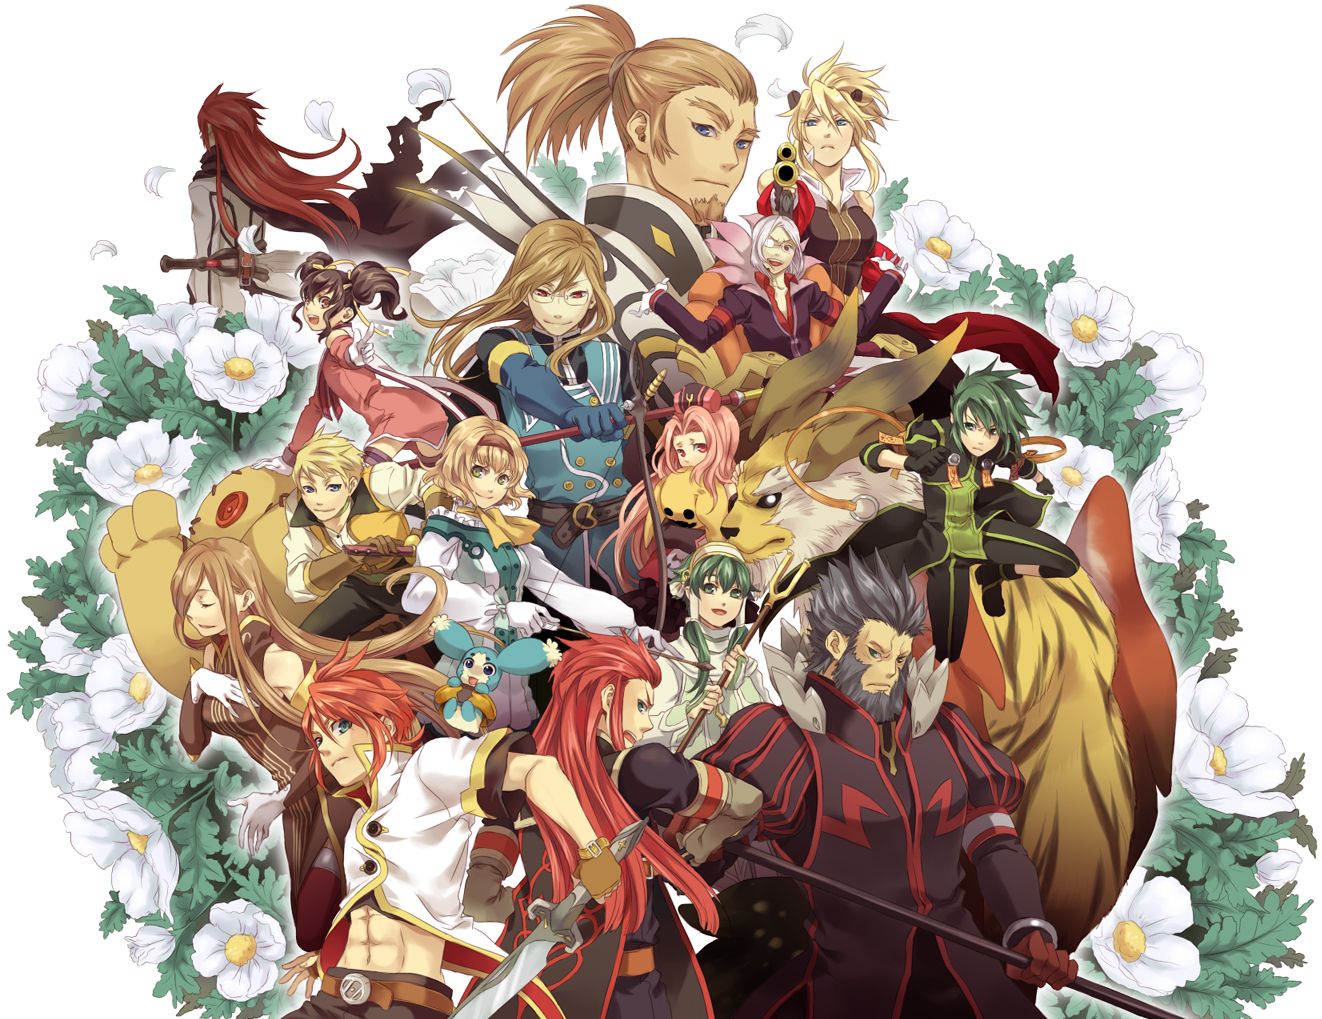 Anime Tales of the Abyss Dansk Anime 1322x1019